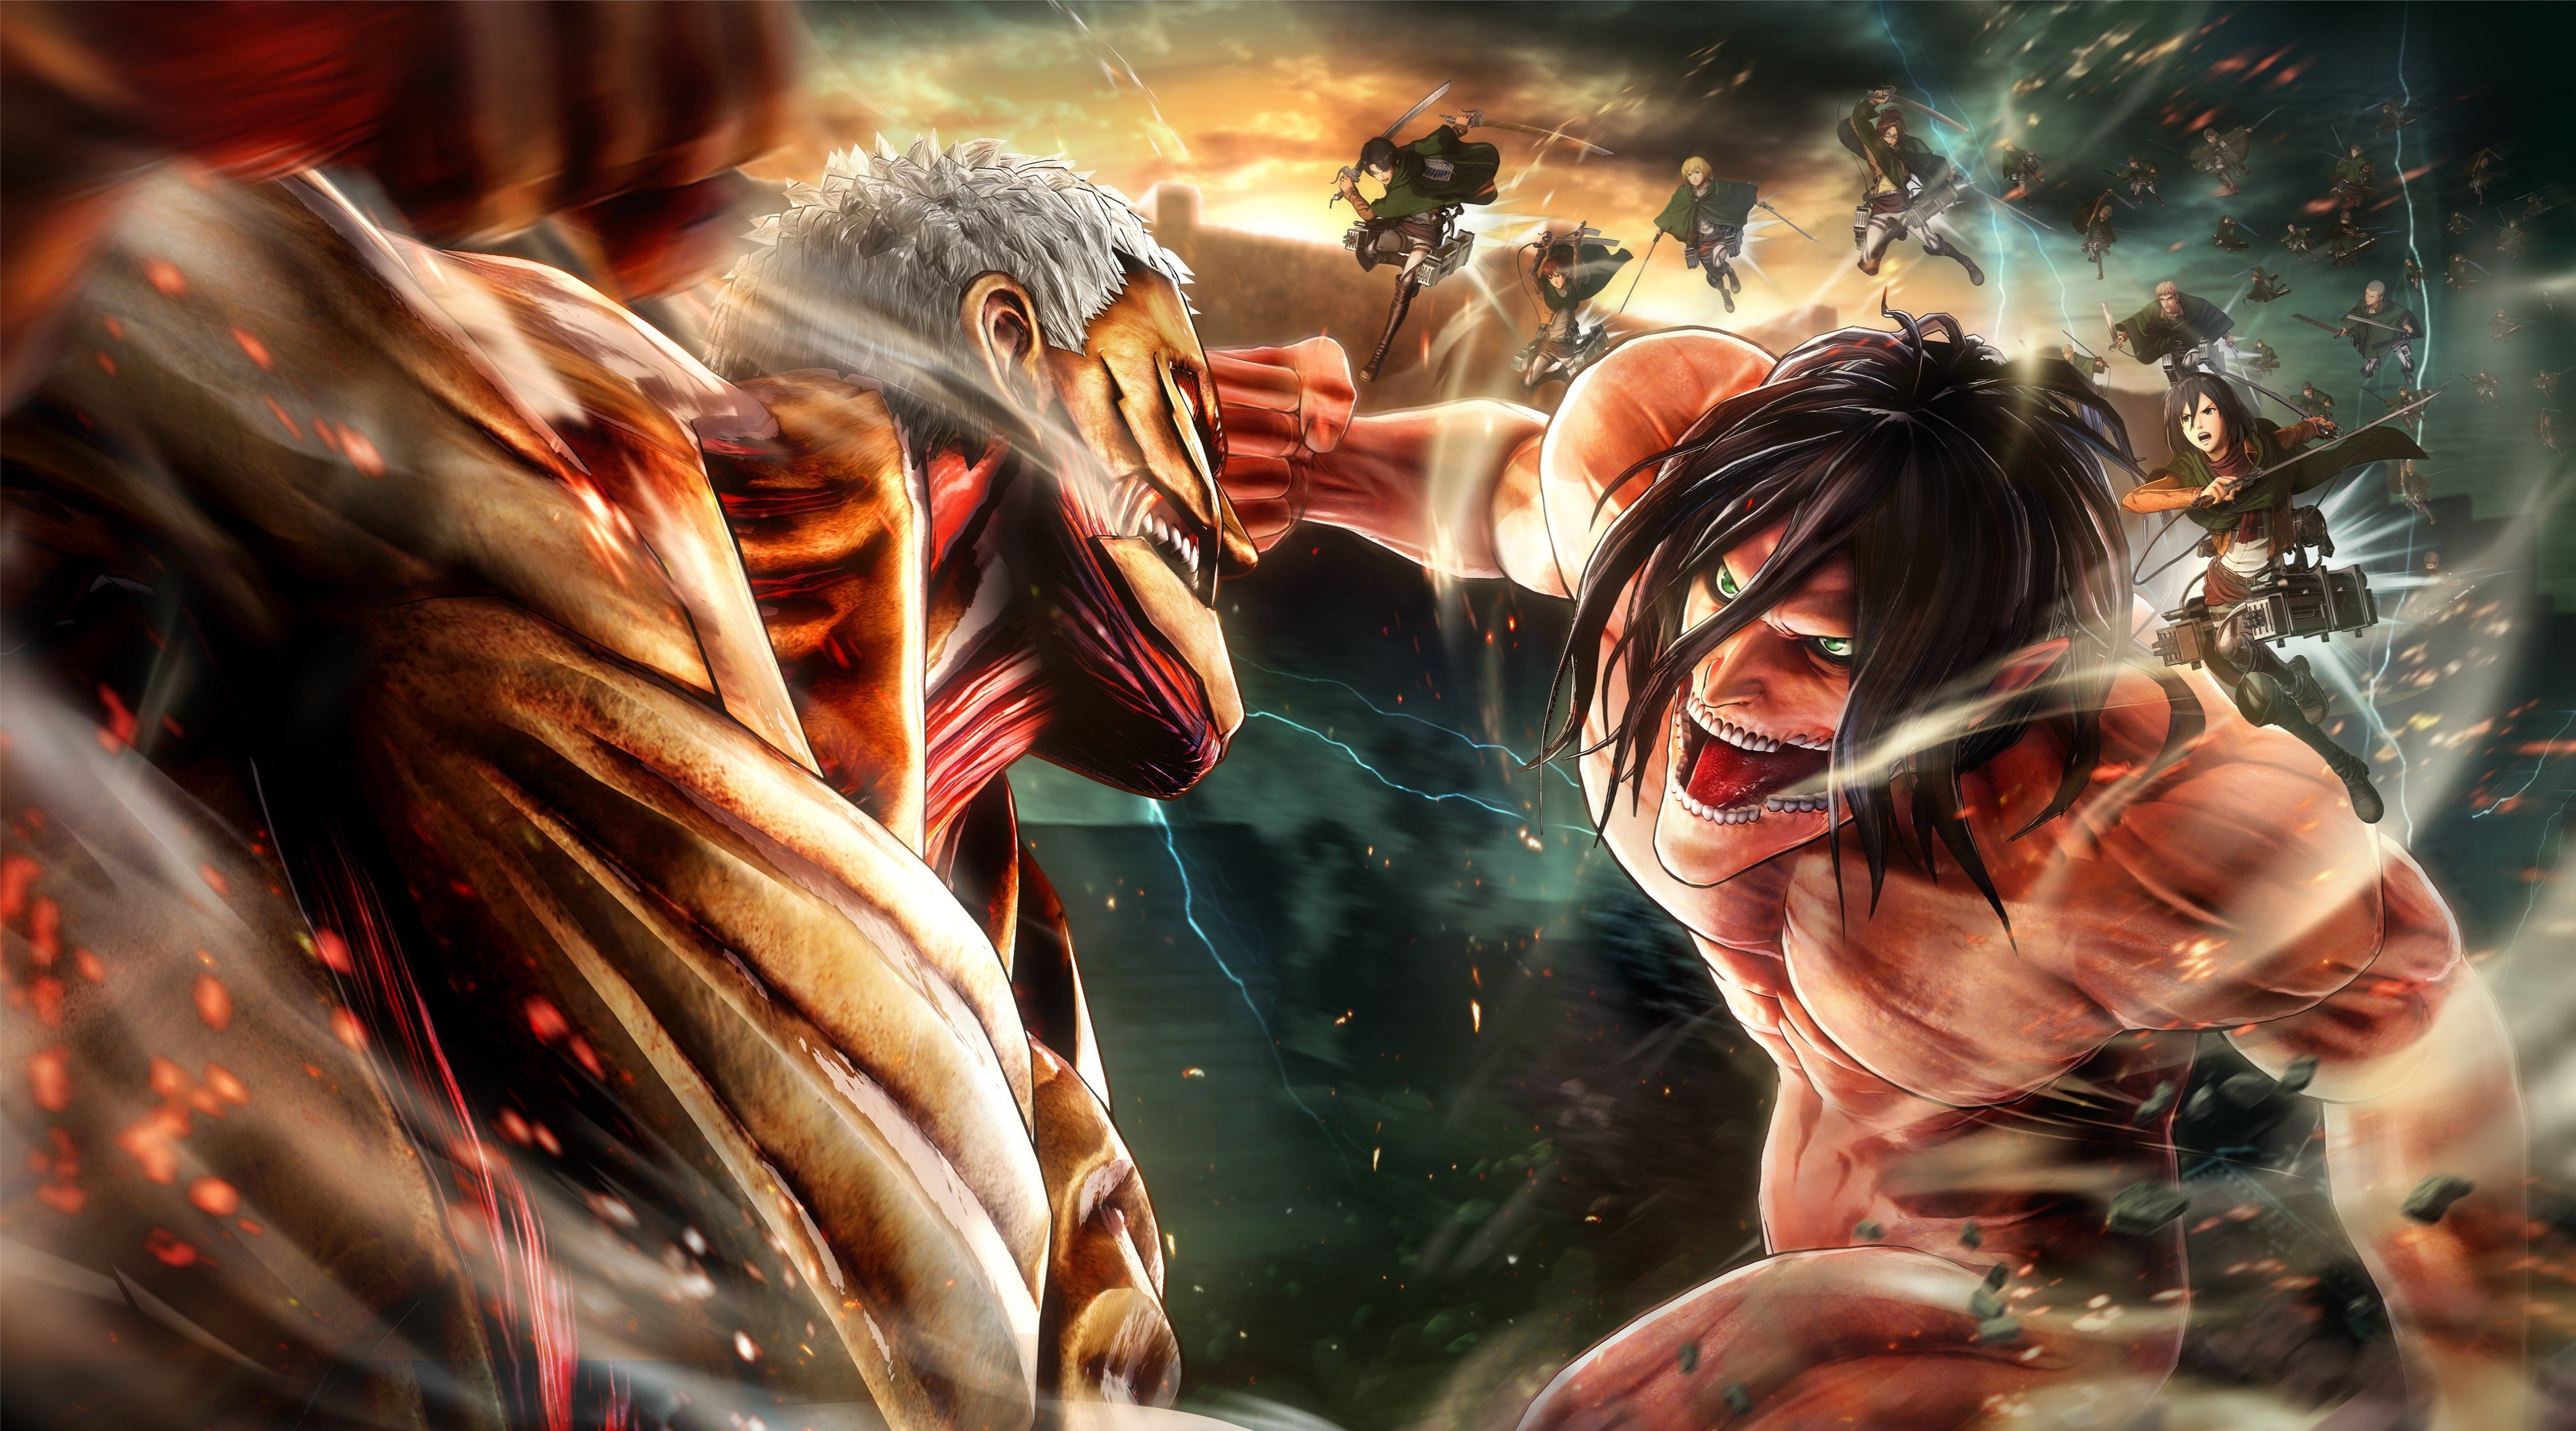 Get Best Anime Wallpaper Iphone Levi Gambar Wallpaper Anime Attack On Titan Think About Imag In 2020 Anime Wallpaper Iphone Anime Wallpaper Attack On Titan